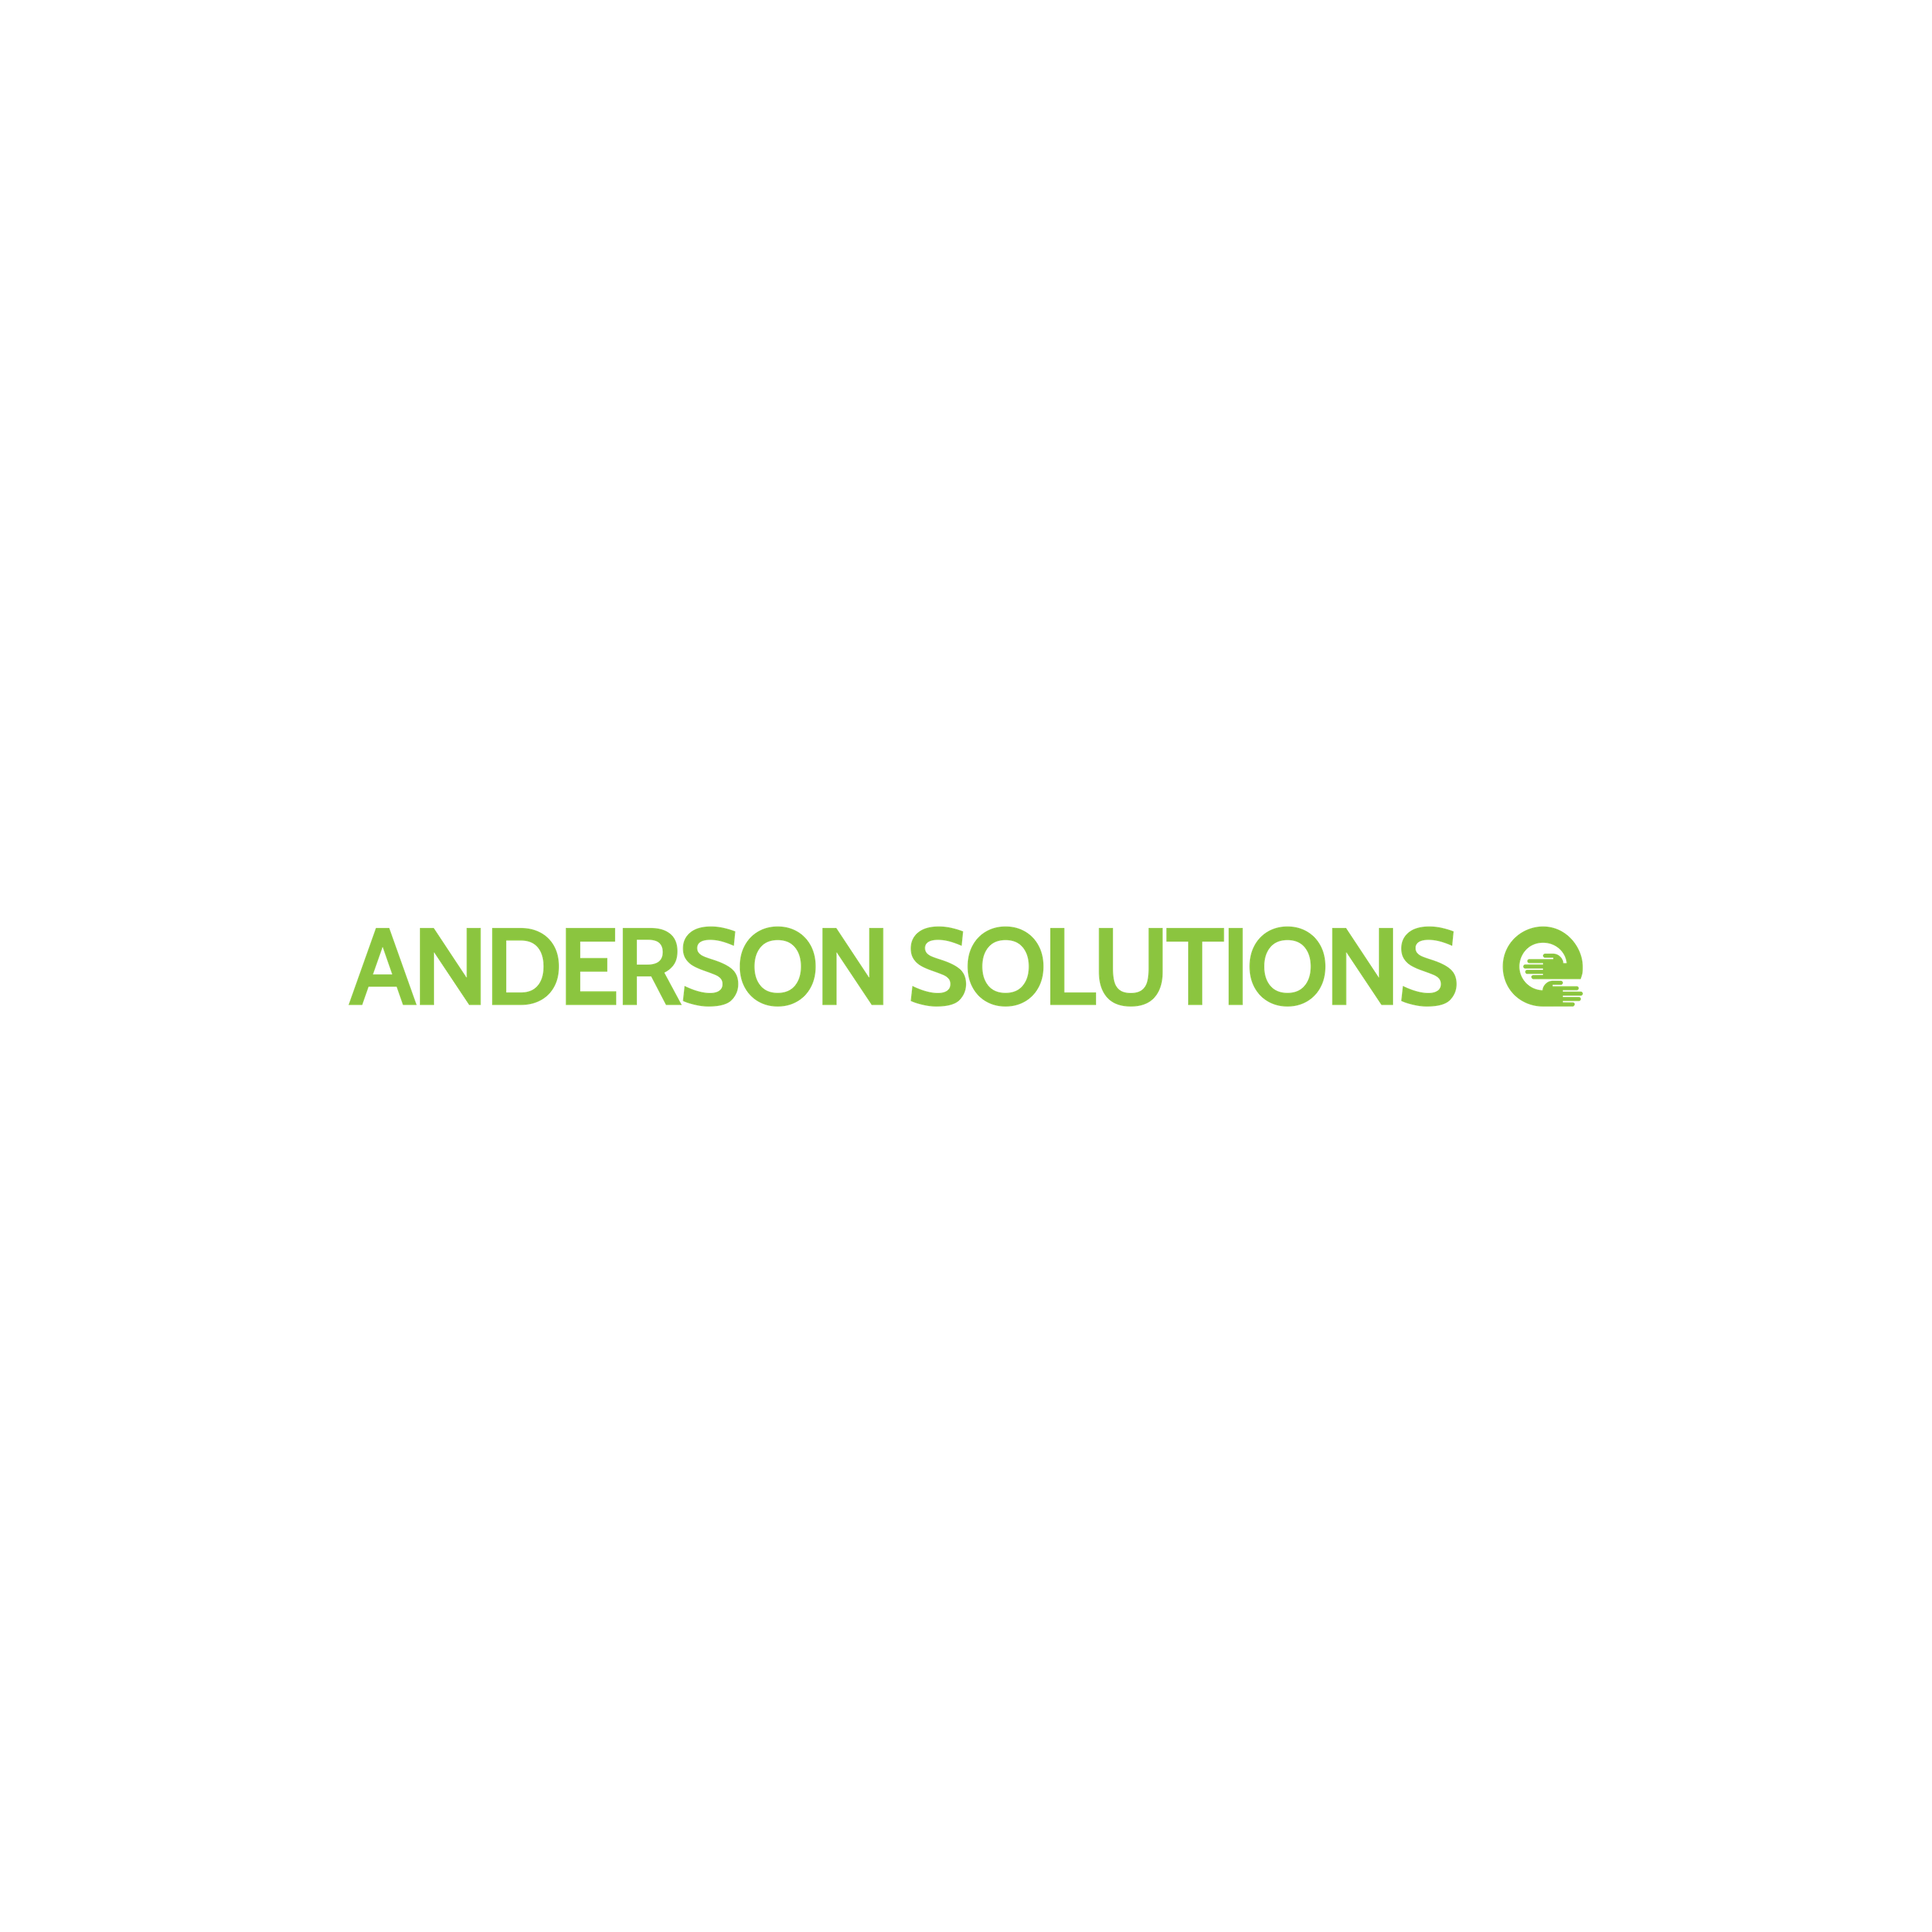 Anderson Solutions